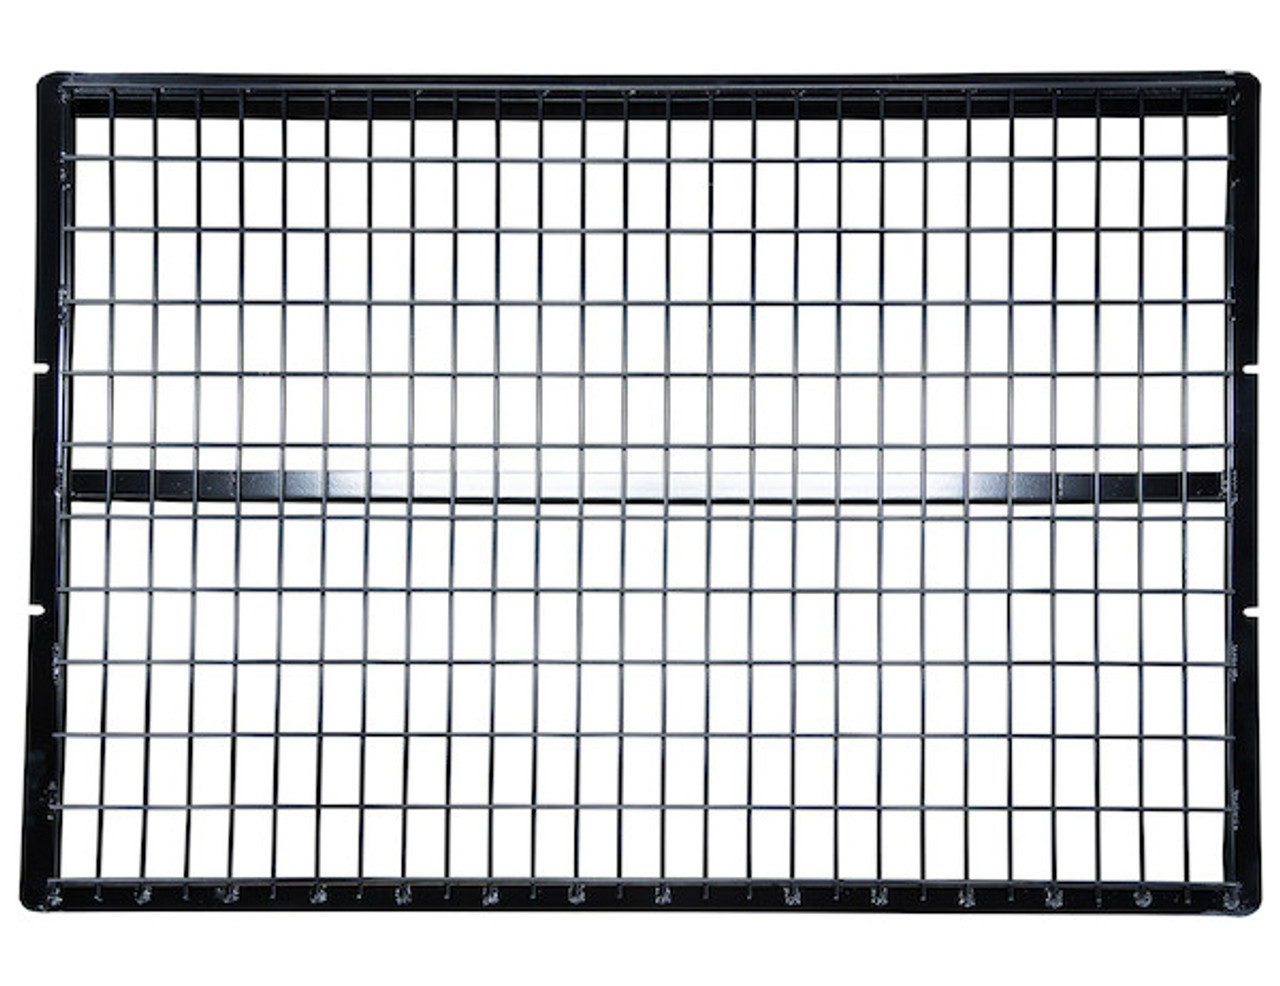 BUYERS 3028154 Replacement 8 Foot Top Half Screen For SaltDogg 1400455SS And 1400455SSE Spreaders